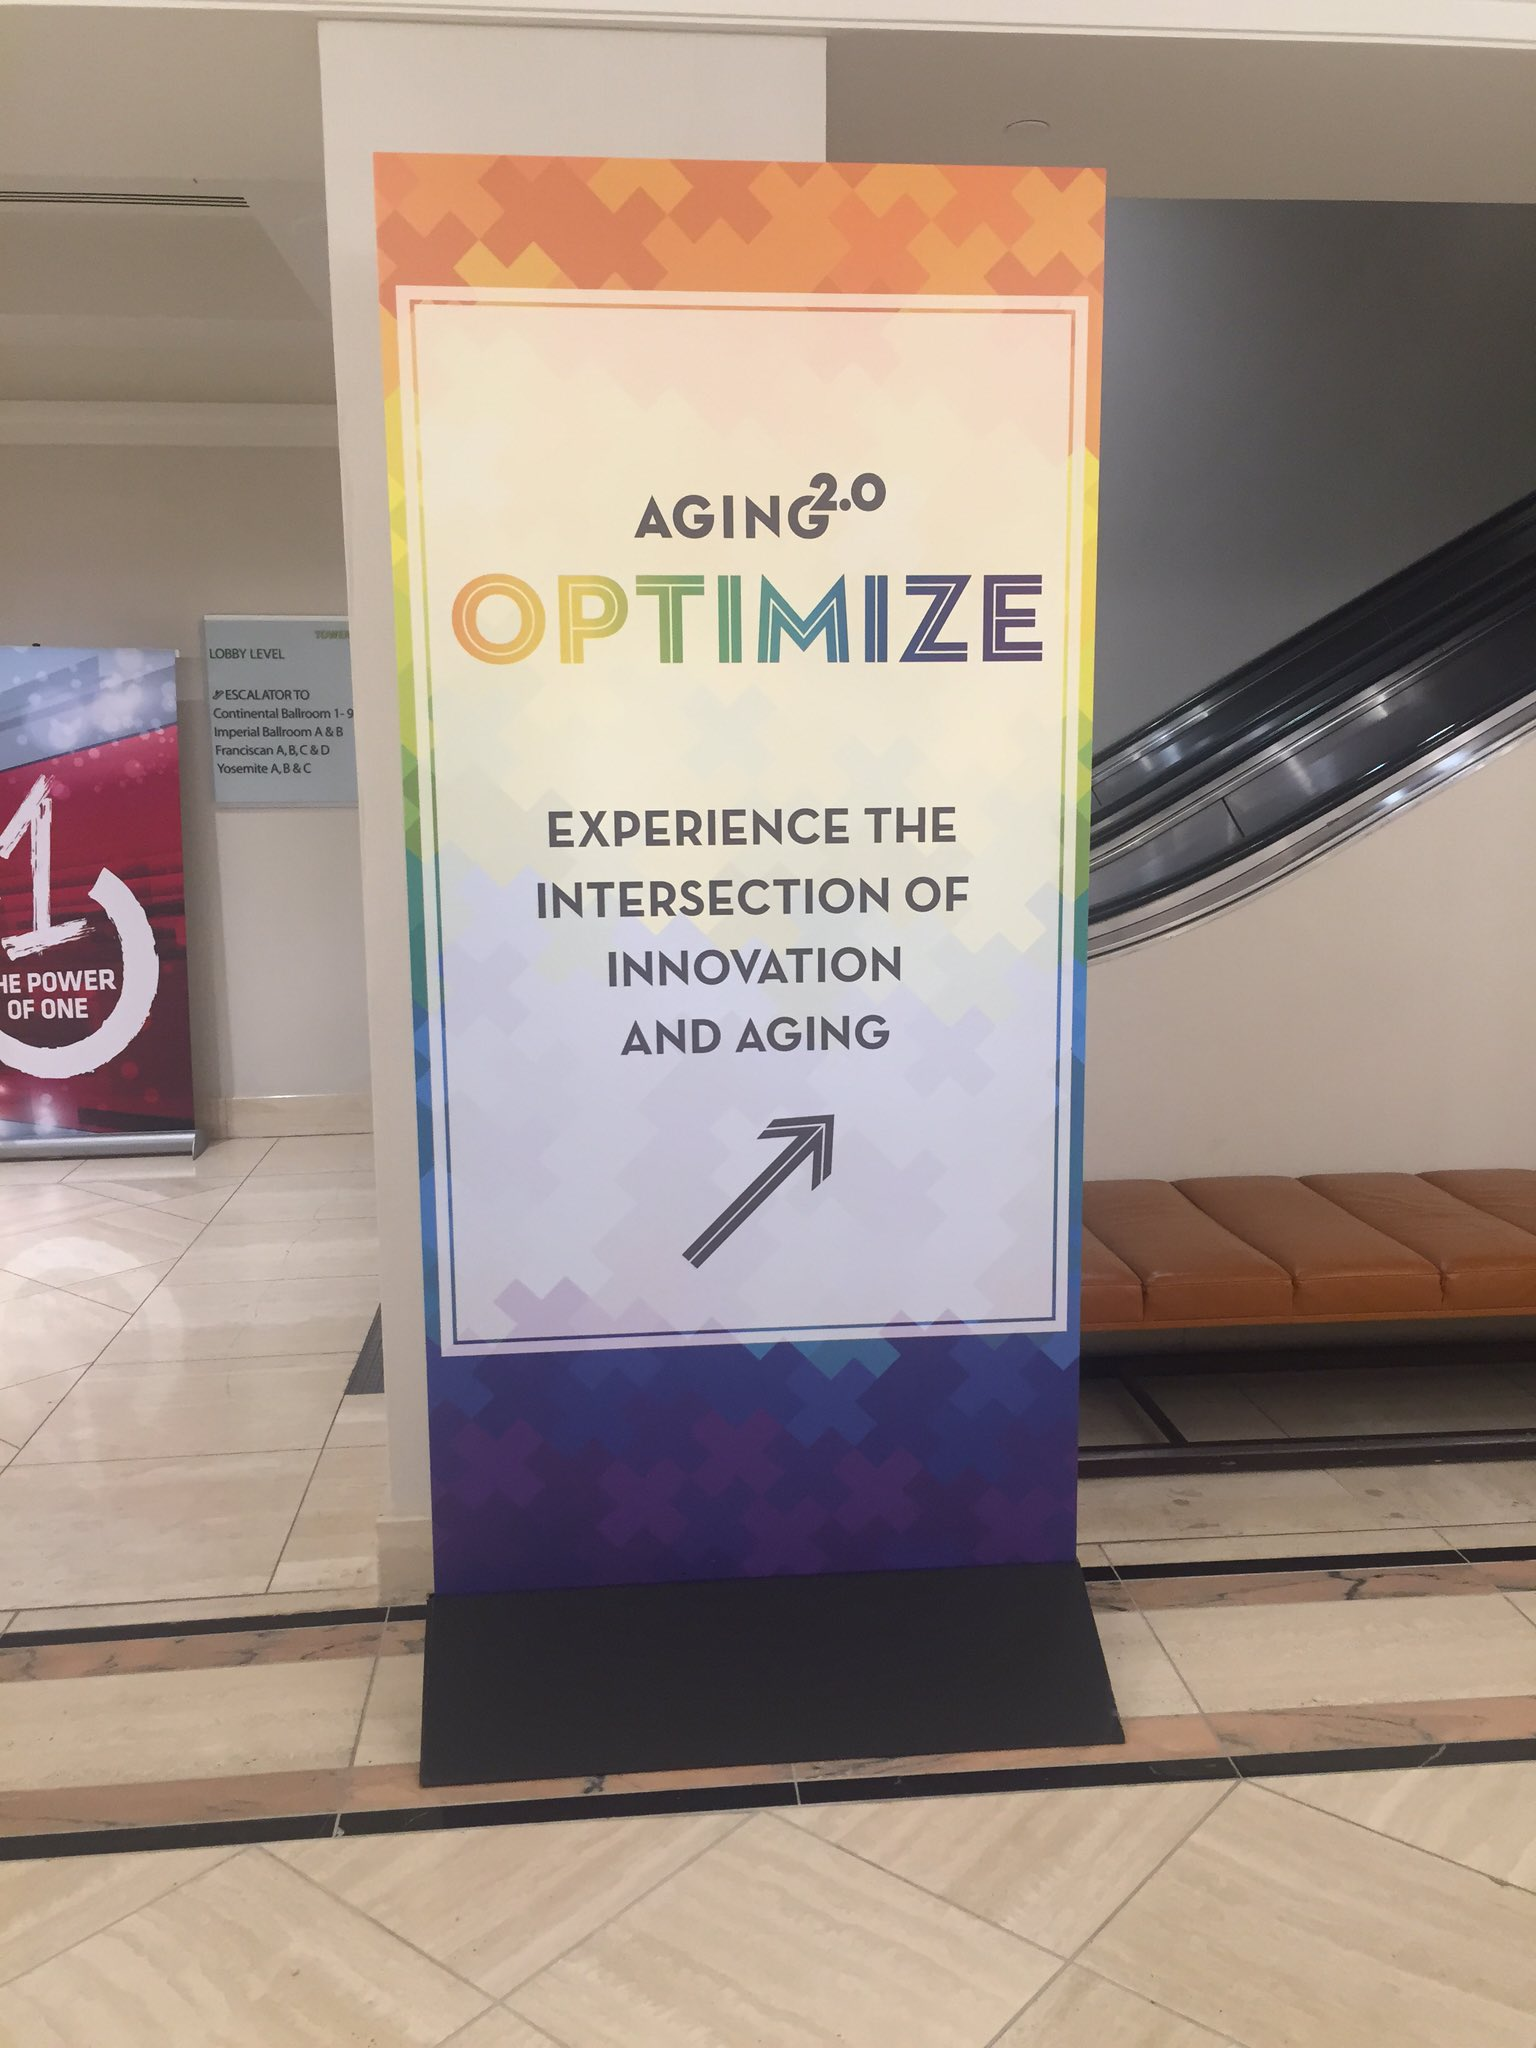 1 day complete! Excited for a full day of innovation & aging tomorrow! #A2OPTIMIZE @Aging20 https://t.co/y0Vg6VWV2g